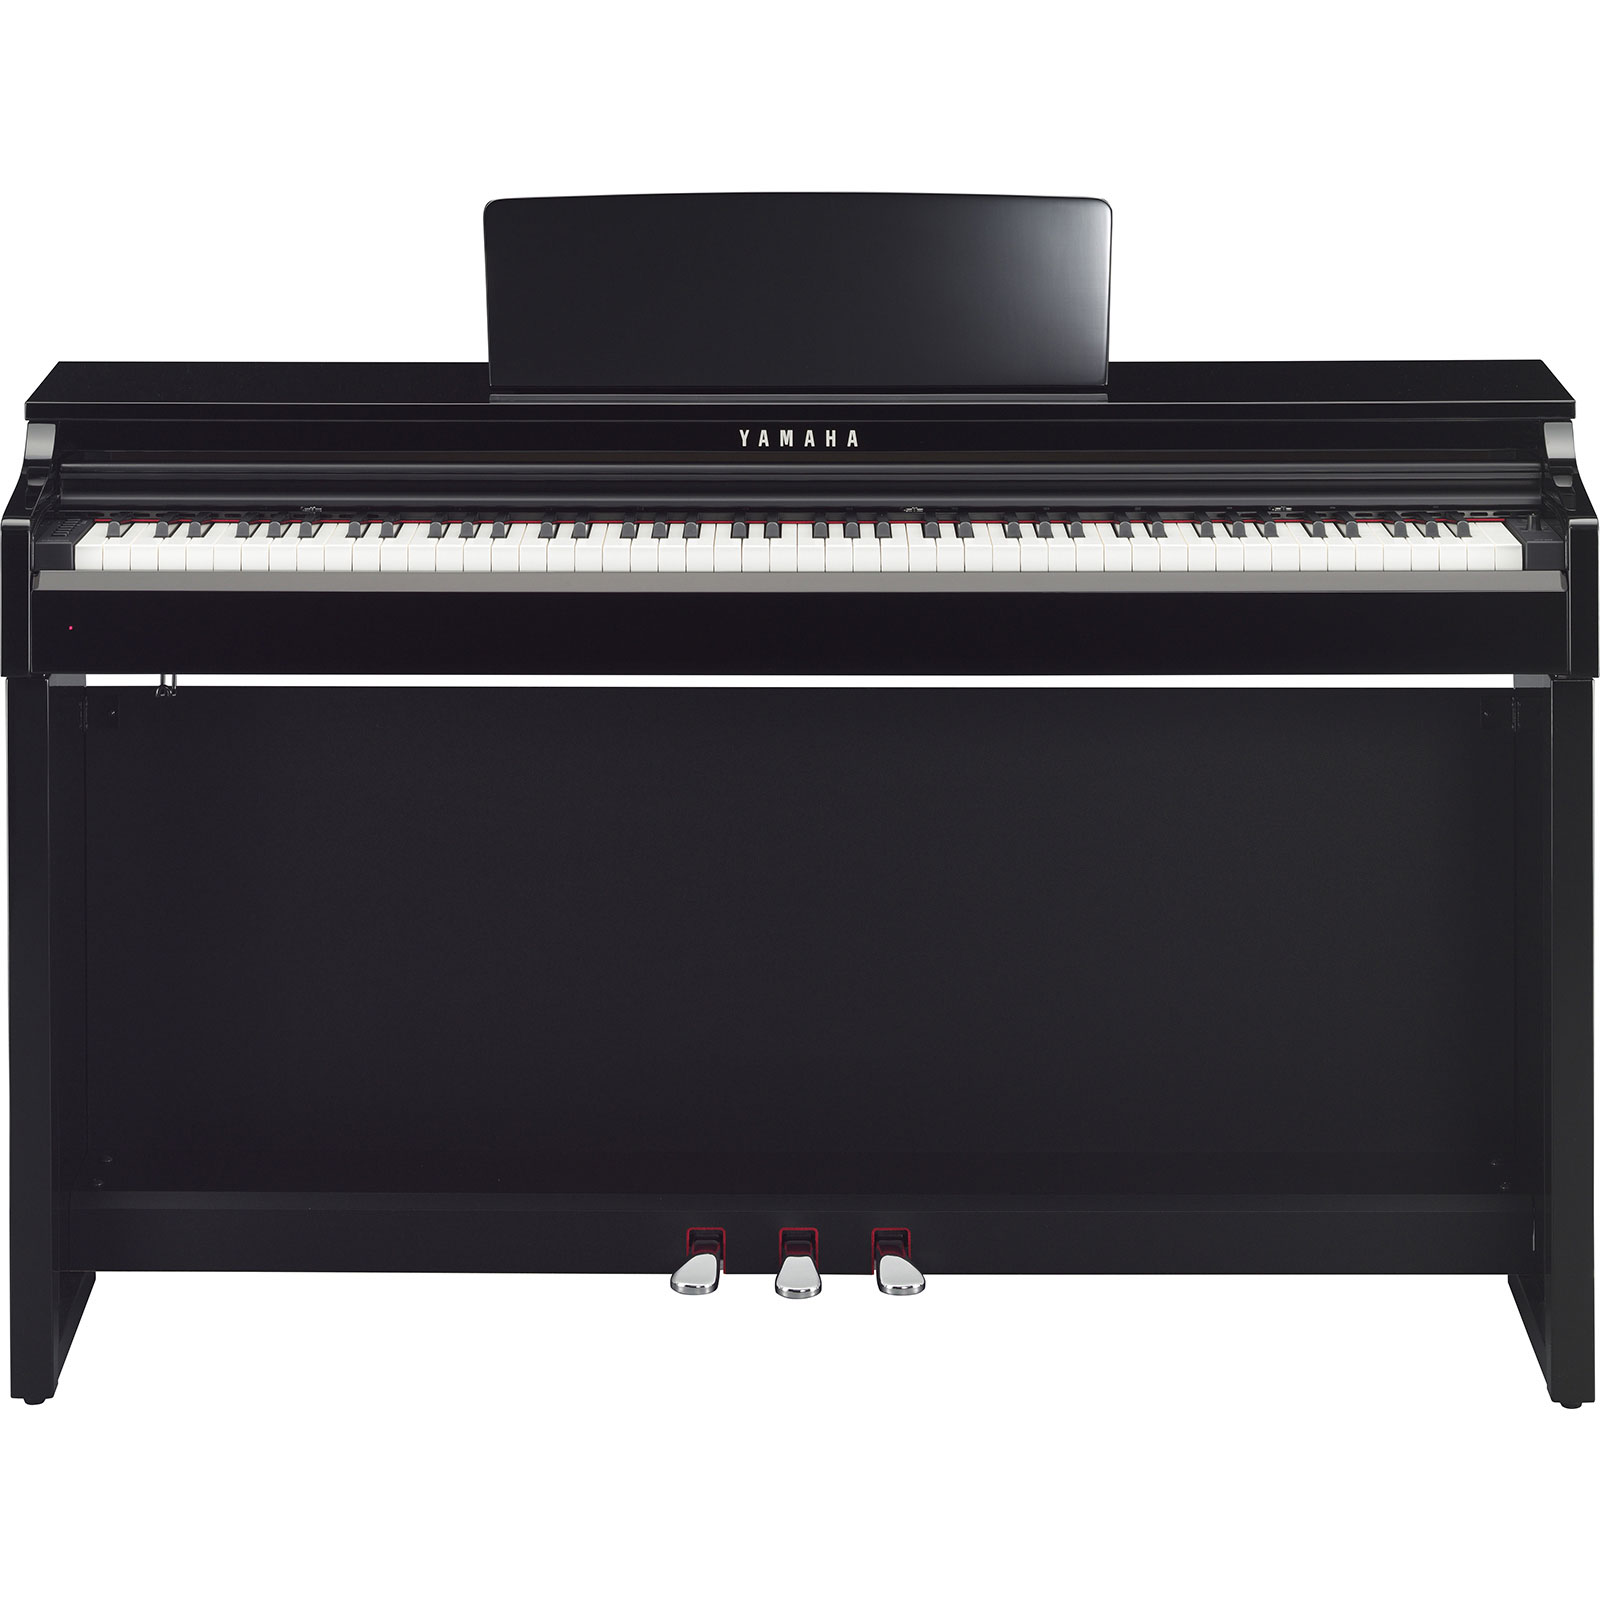 clp 545 absolute pianoabsolute piano. Black Bedroom Furniture Sets. Home Design Ideas